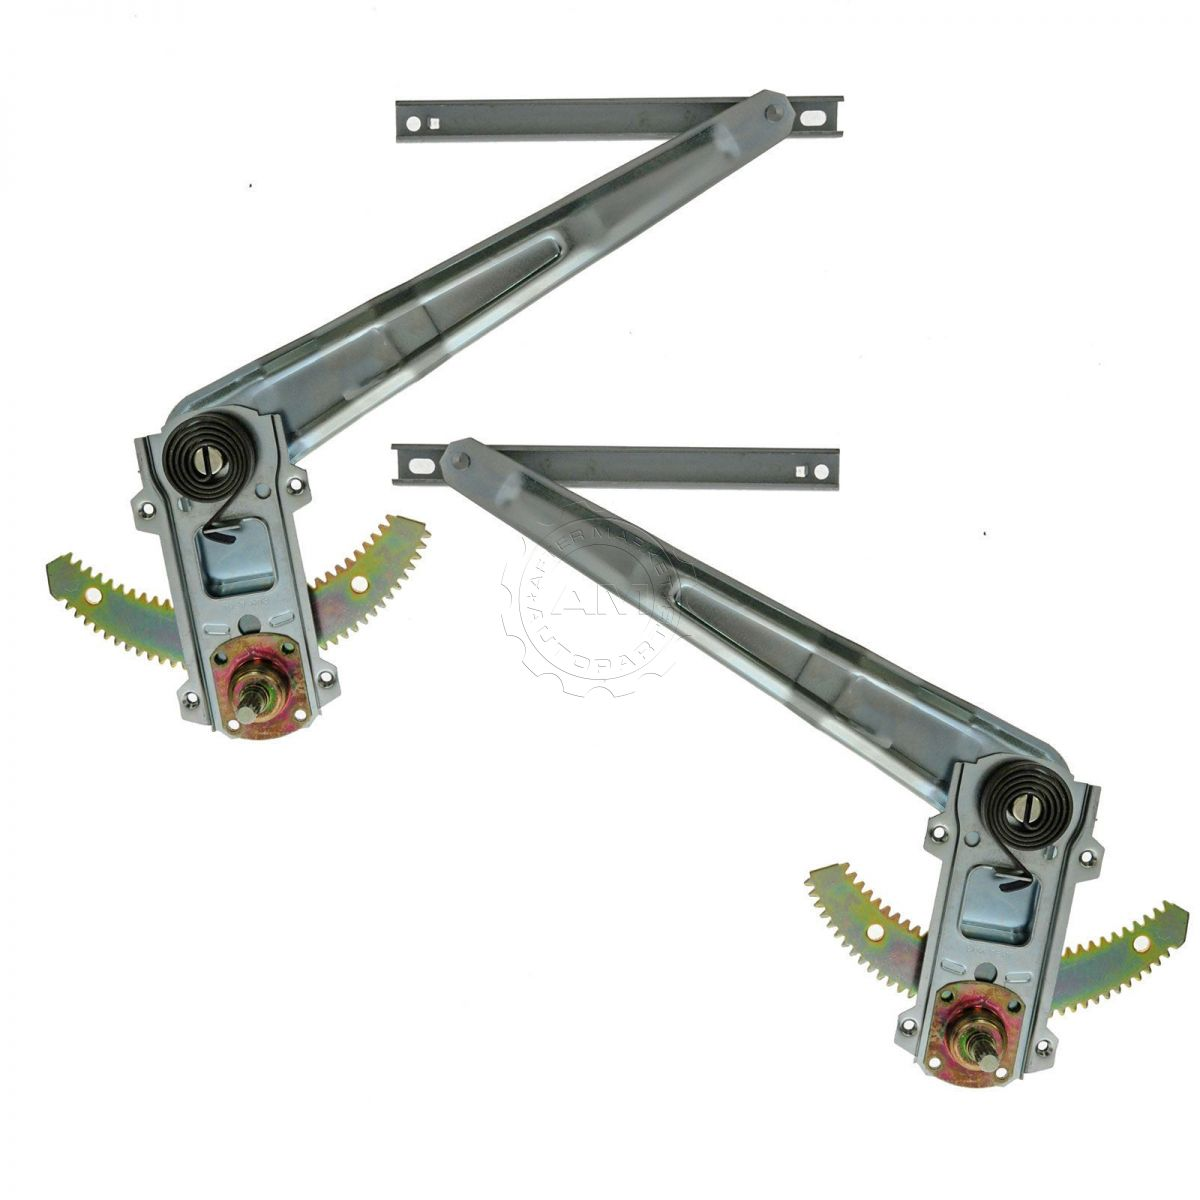 hight resolution of dorman front manual window regulator pair for isuzu amigo rodeo pup pickup truck